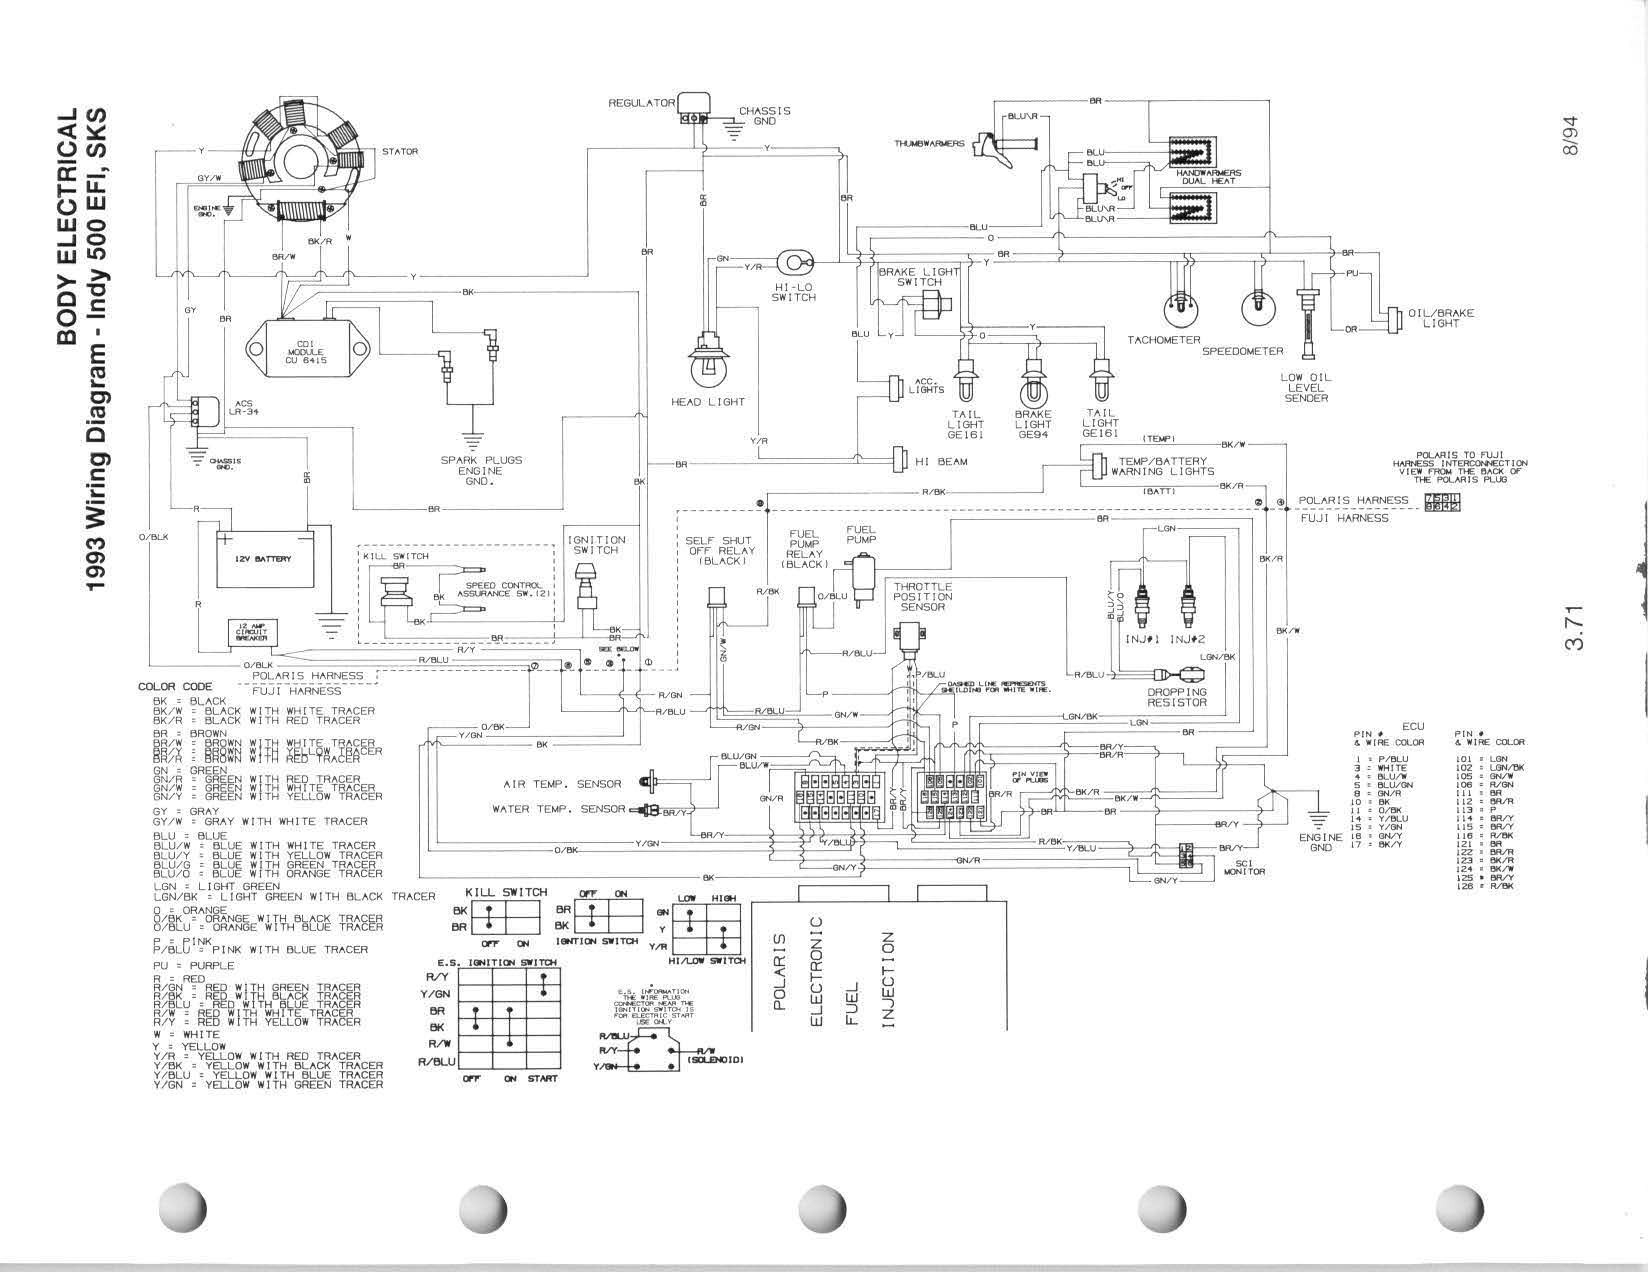 2012 Polaris Rzr 800 Wiring Diagram Gallery